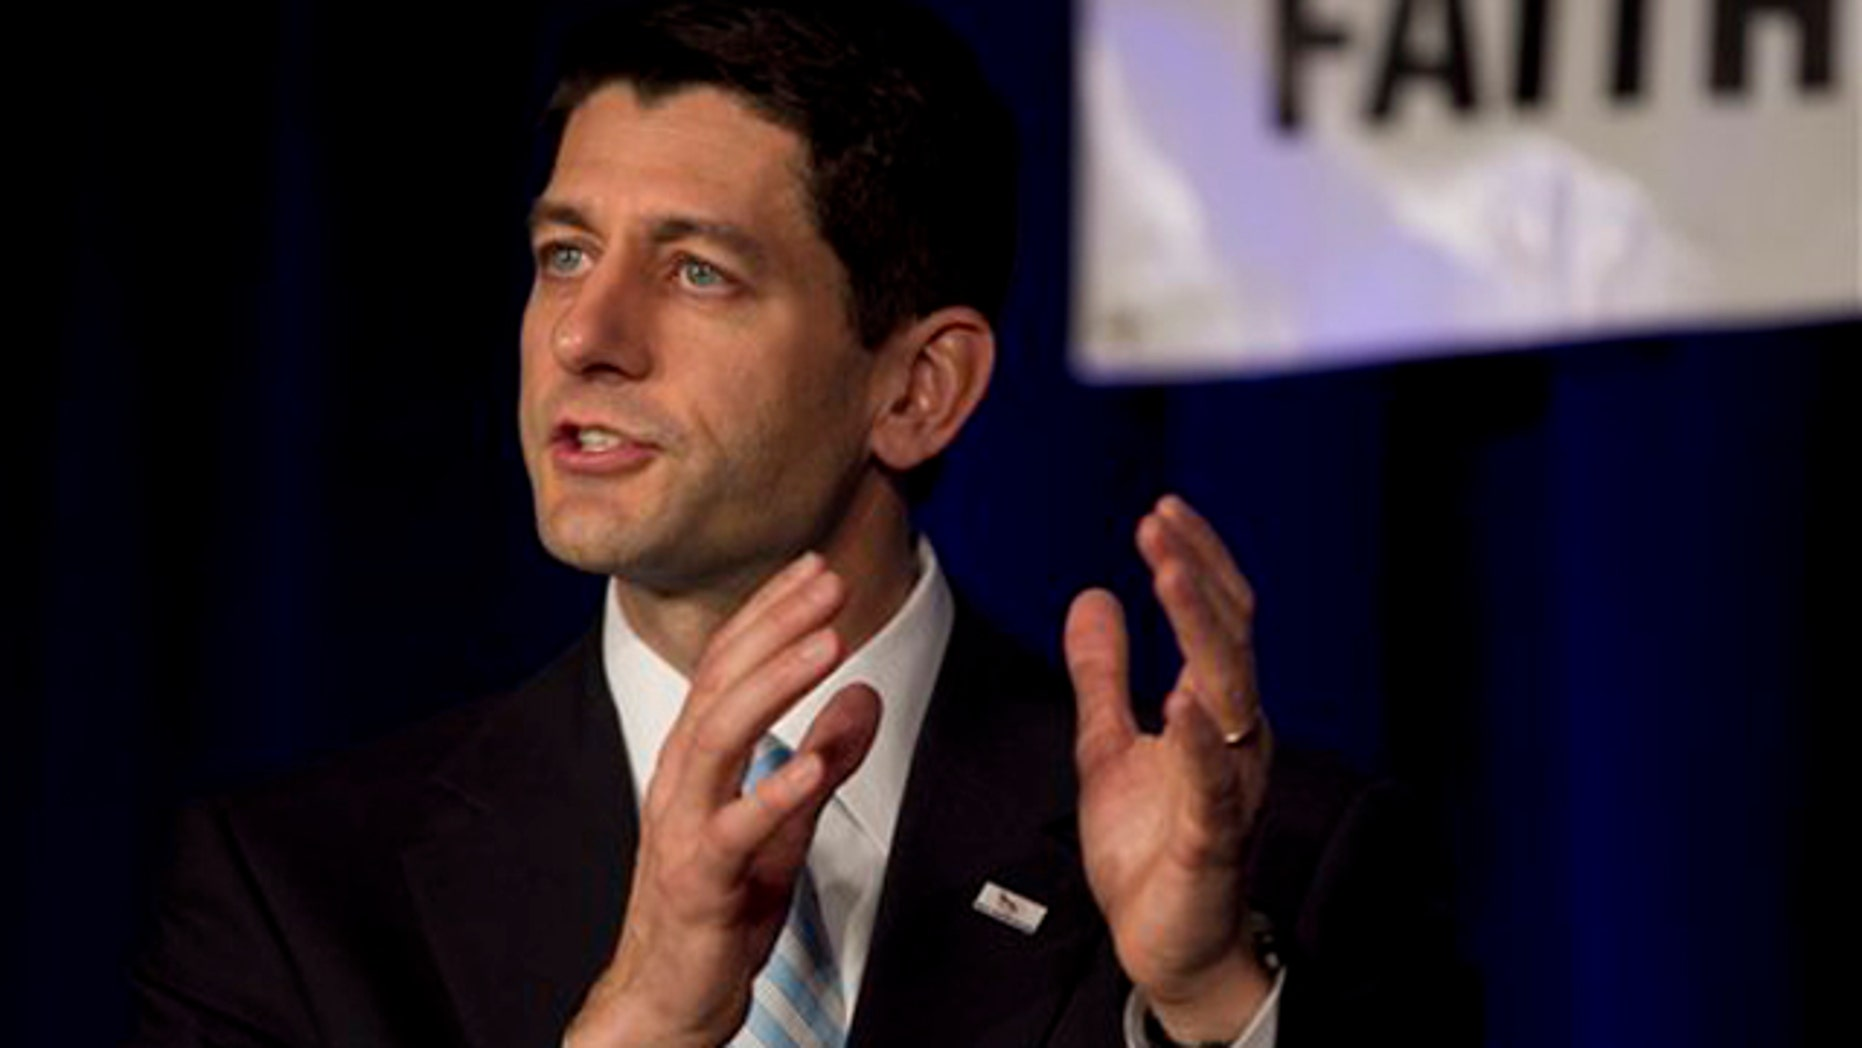 March 31, 2012: Rep. Paul Ryan speaks during a campaign stop for Mitt Romney in Pewaukee, Wis.